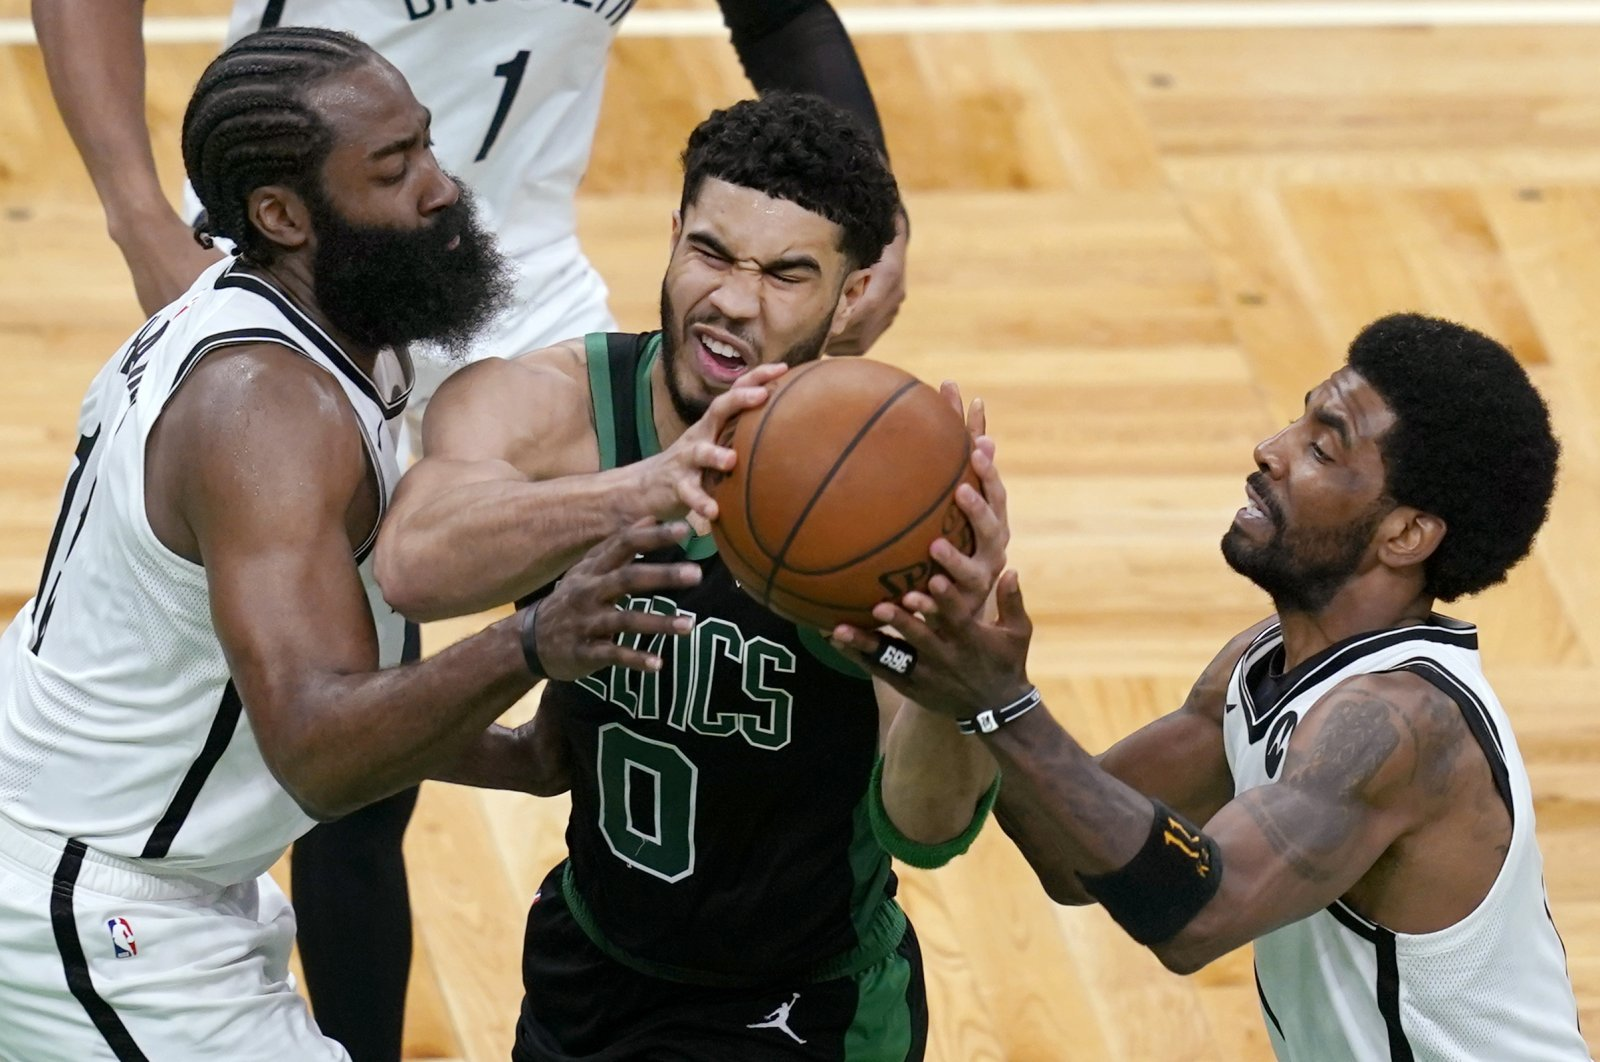 Boston Celtics forward Jayson Tatum (0) drives between Brooklyn Nets guards James Harden (L) and Kyrie Irving during the fourth quarter in Game 3 of an NBA basketball first-round playoff series Friday, May 28, 2021, in Boston. (AP Photo)